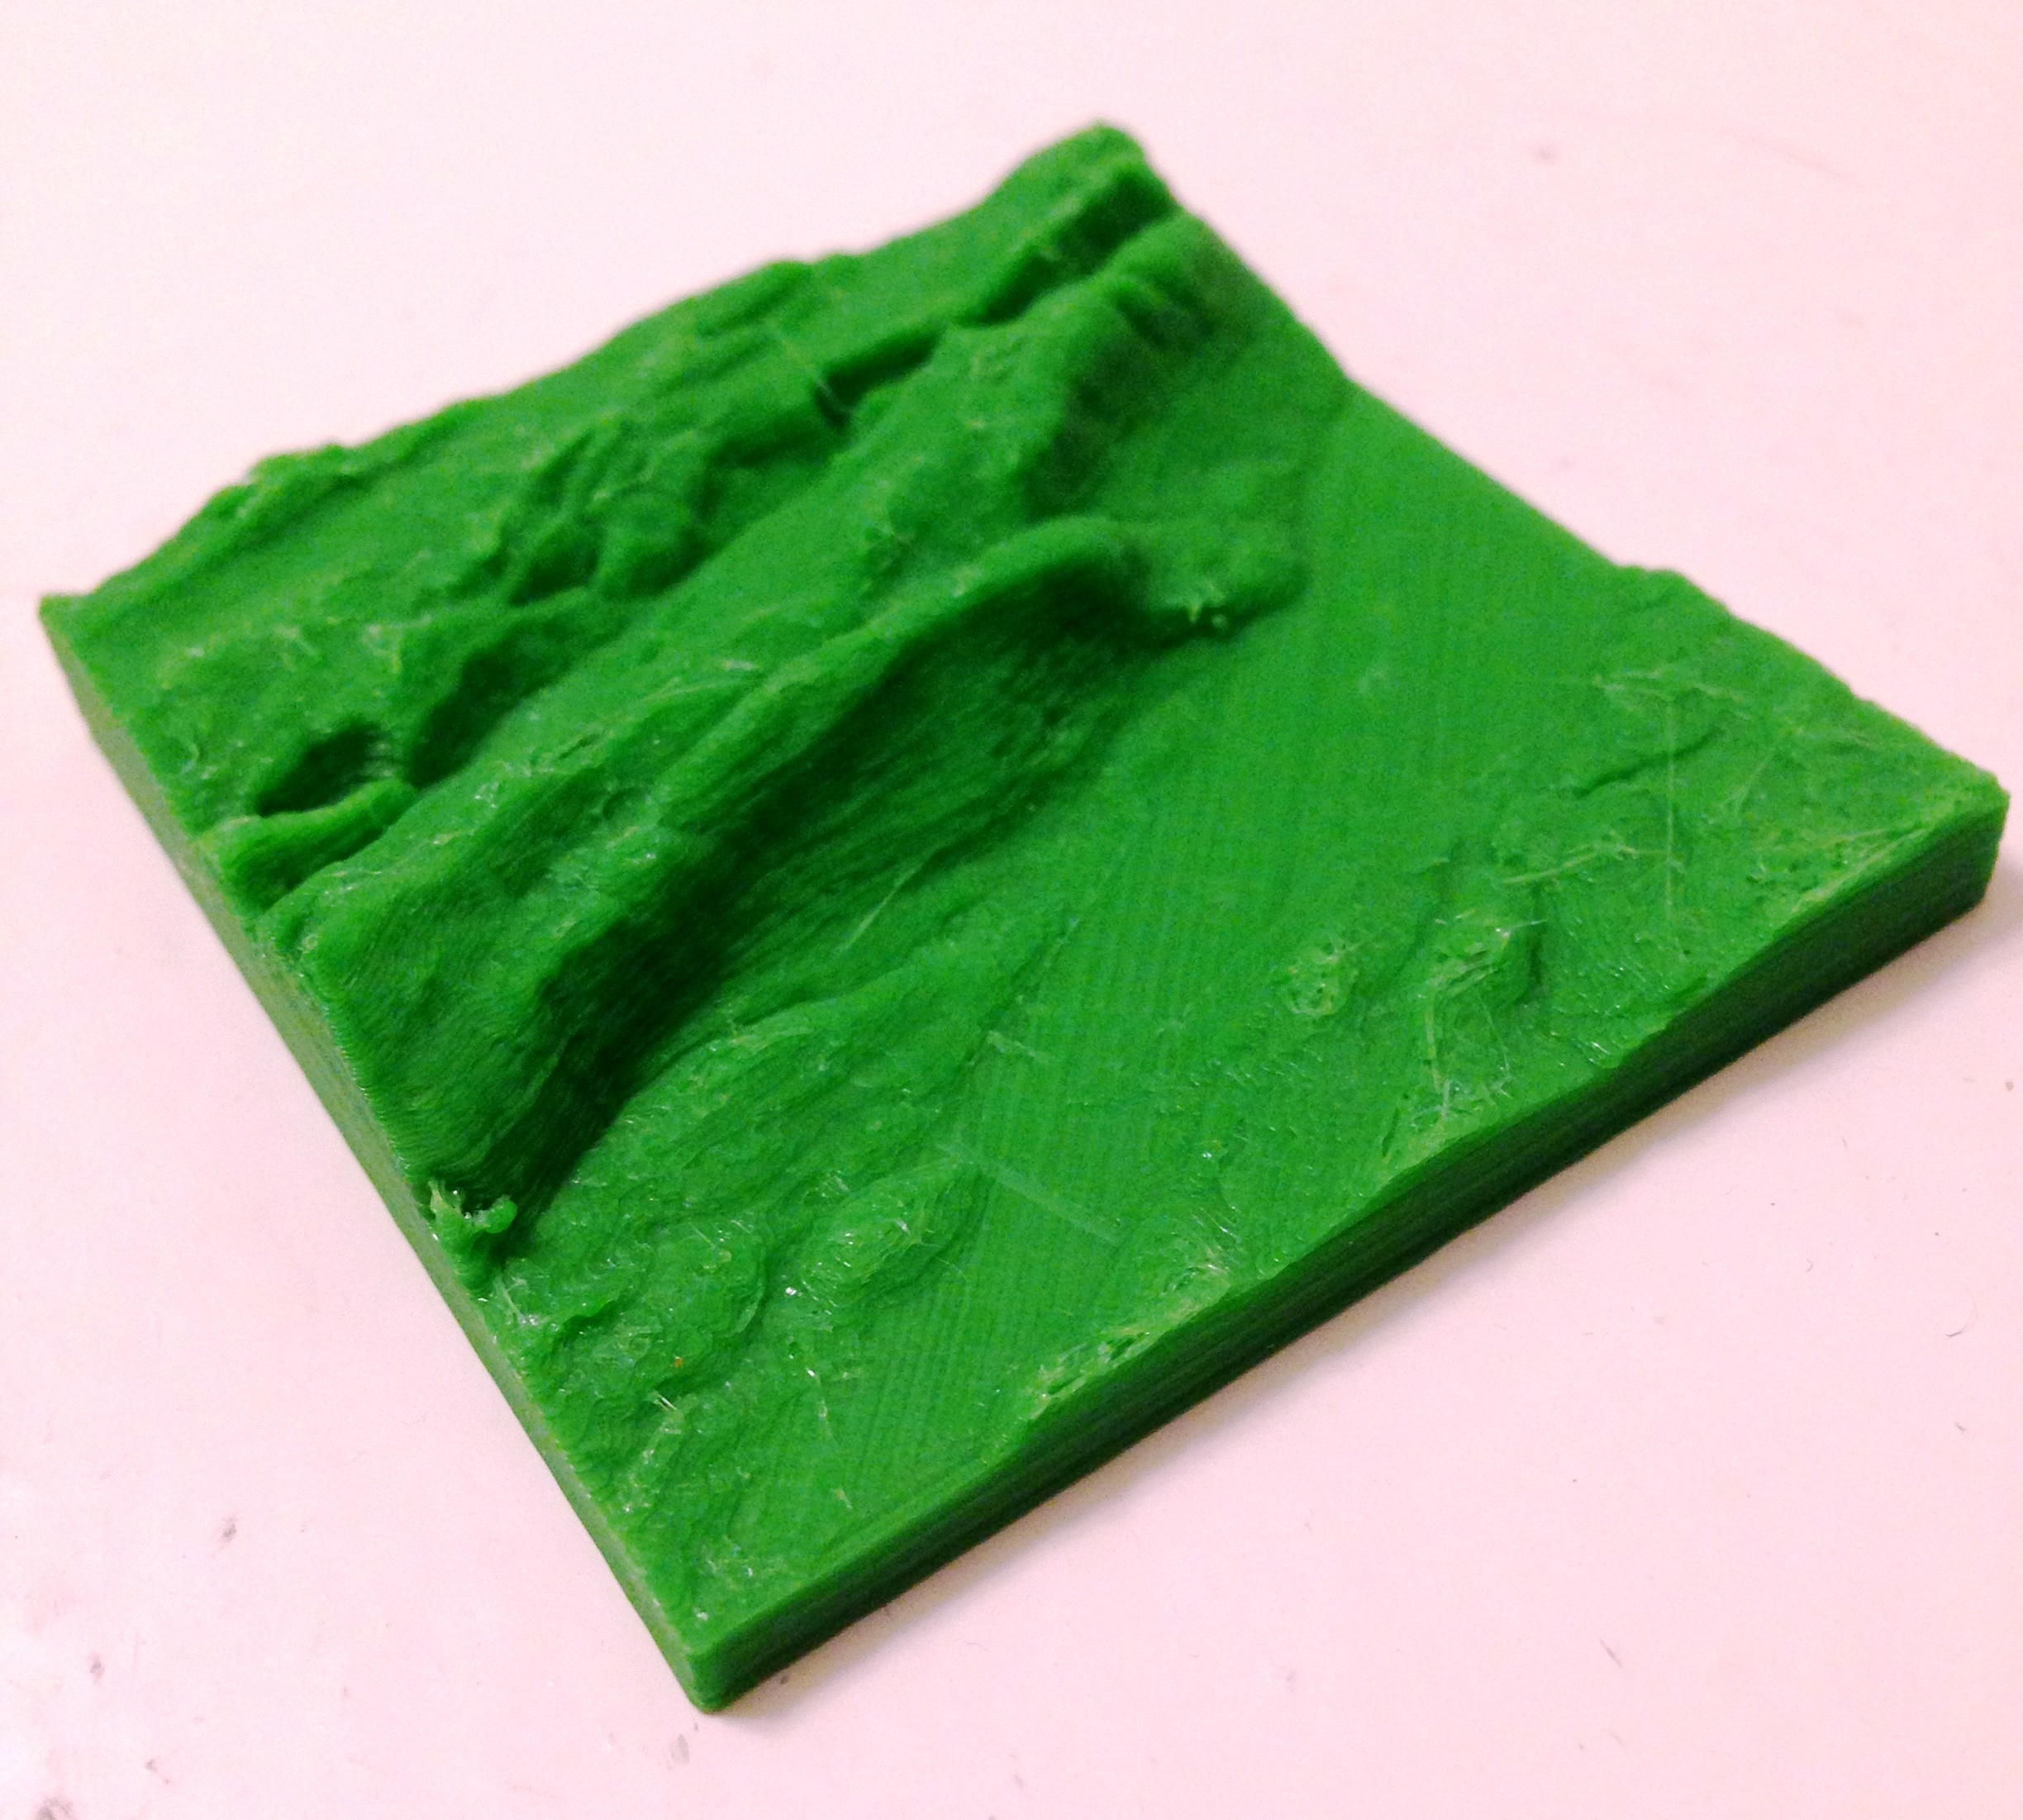 IMG_1526.JPG Download free STL file Neuchâtel topography • Template to 3D print, touchthebitum